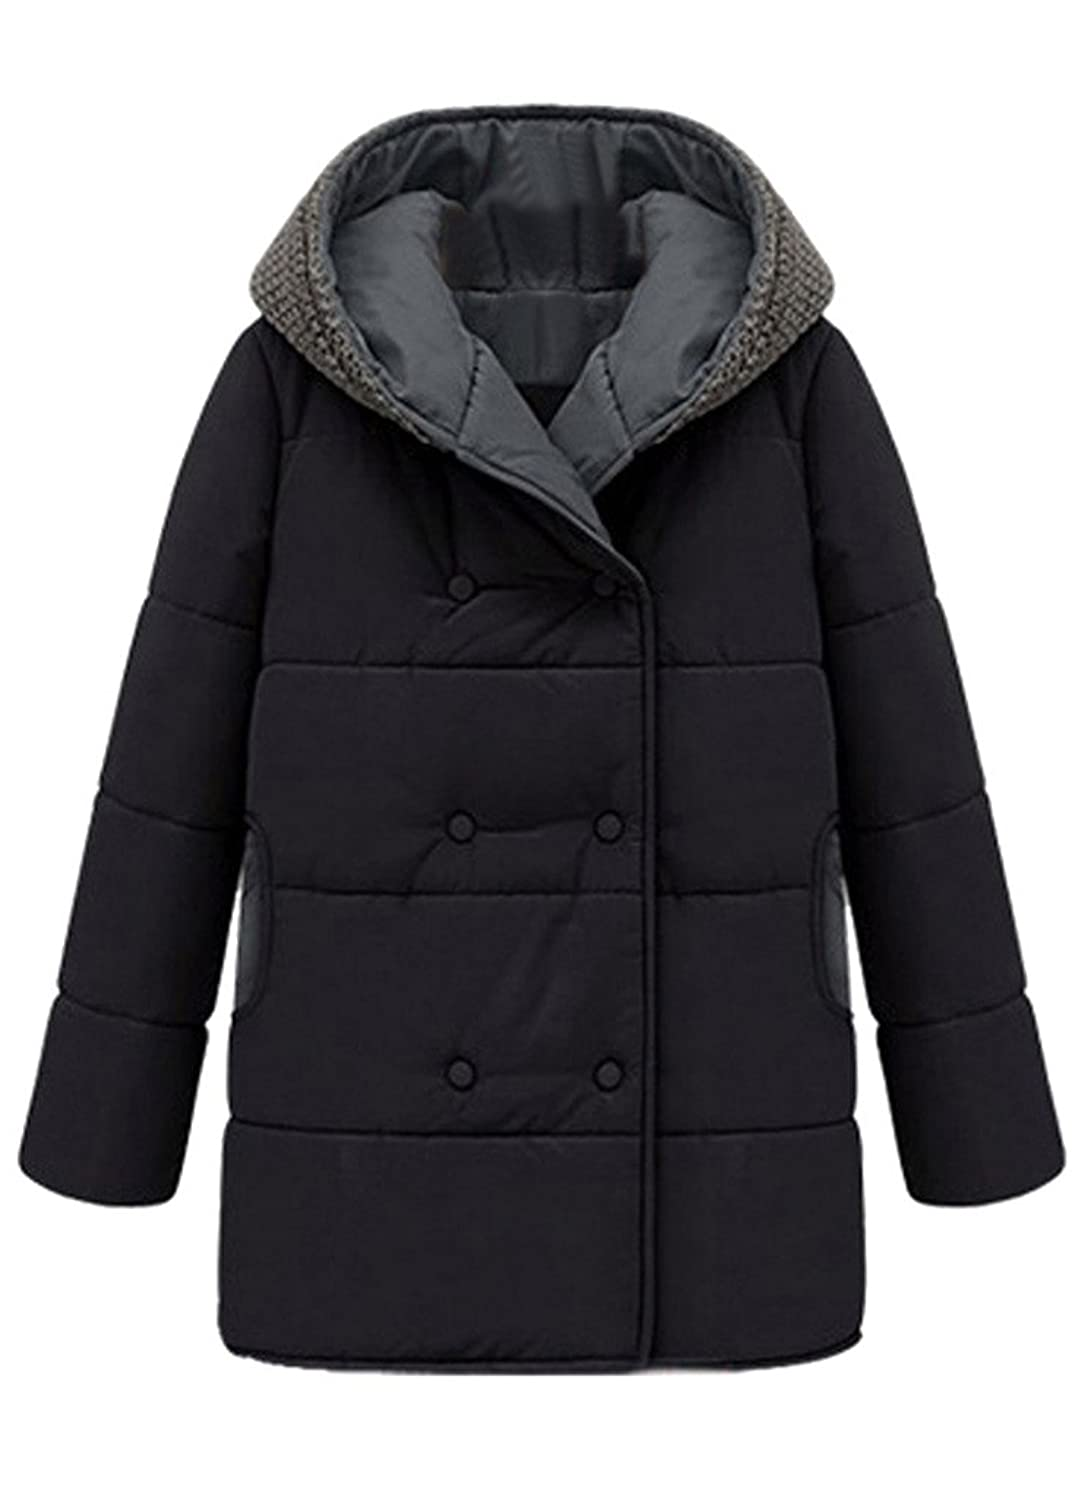 Womens Warm Cotton Knitting Hooded Coat Double Breasted Pea Coat Jacket Outwear